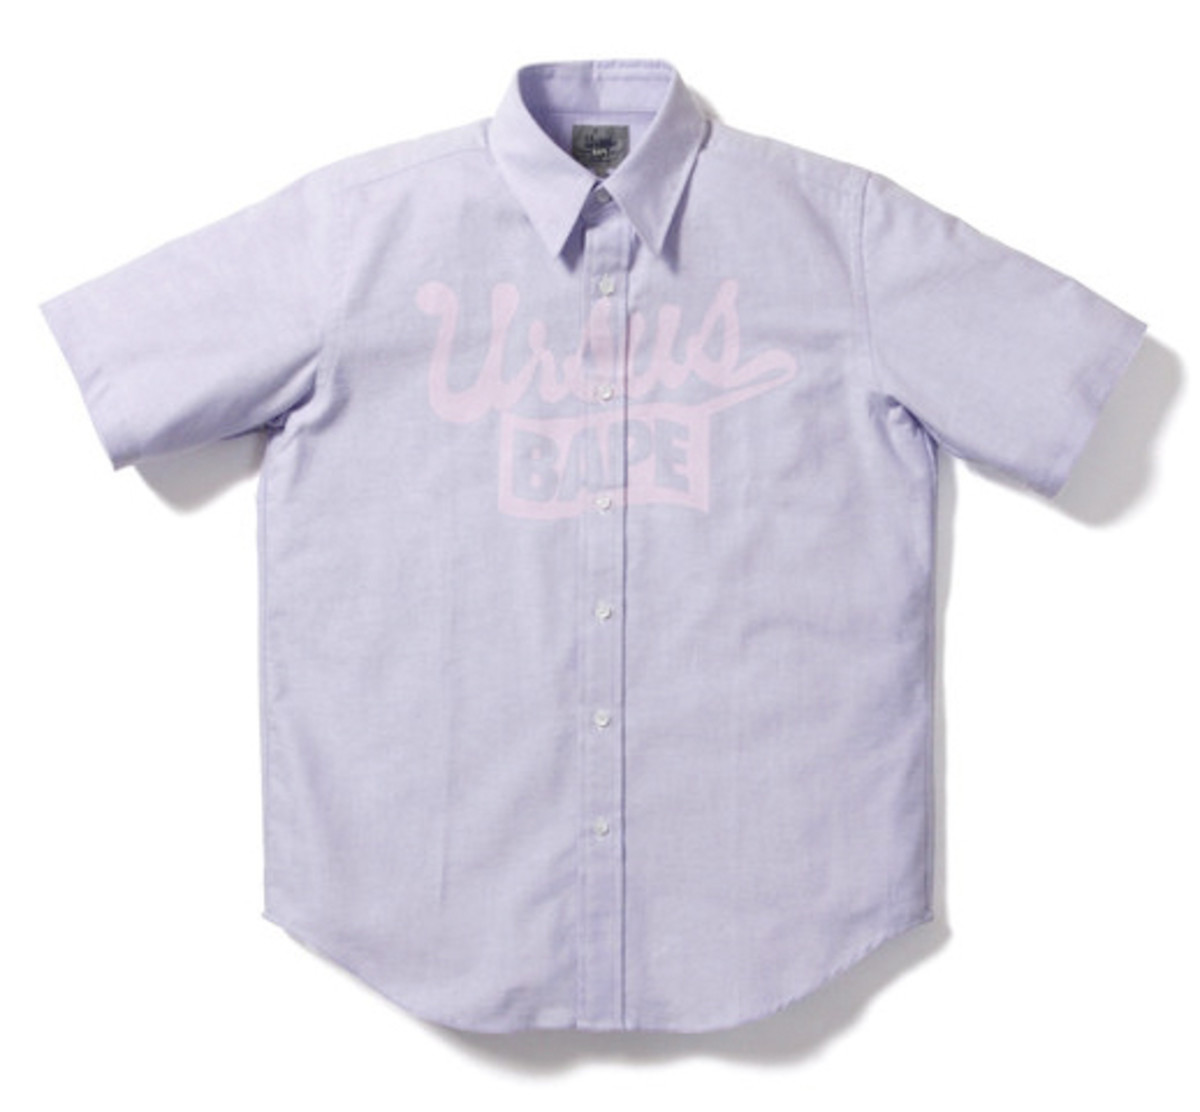 ursus-bape-plain-short-sleeve-shirt-01